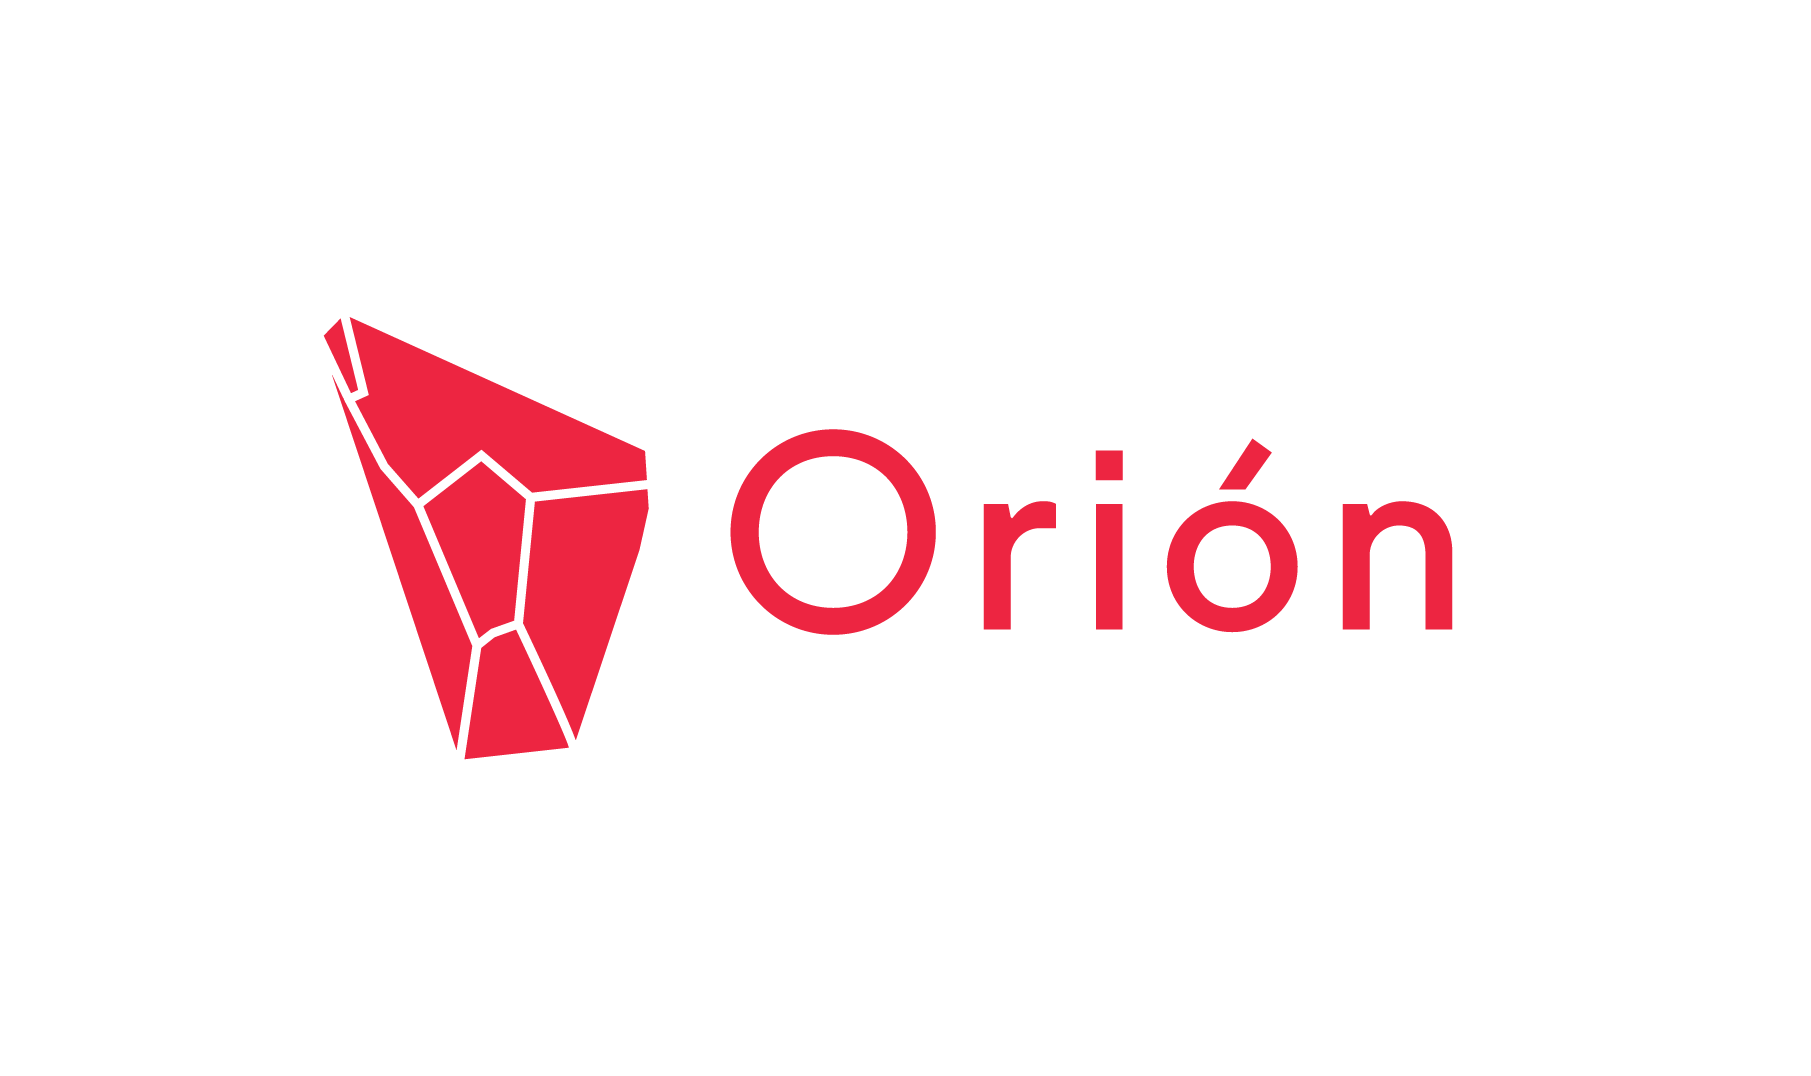 ORION CONTRATOS - Software para el Manejo Integral de Gestión de Contratos